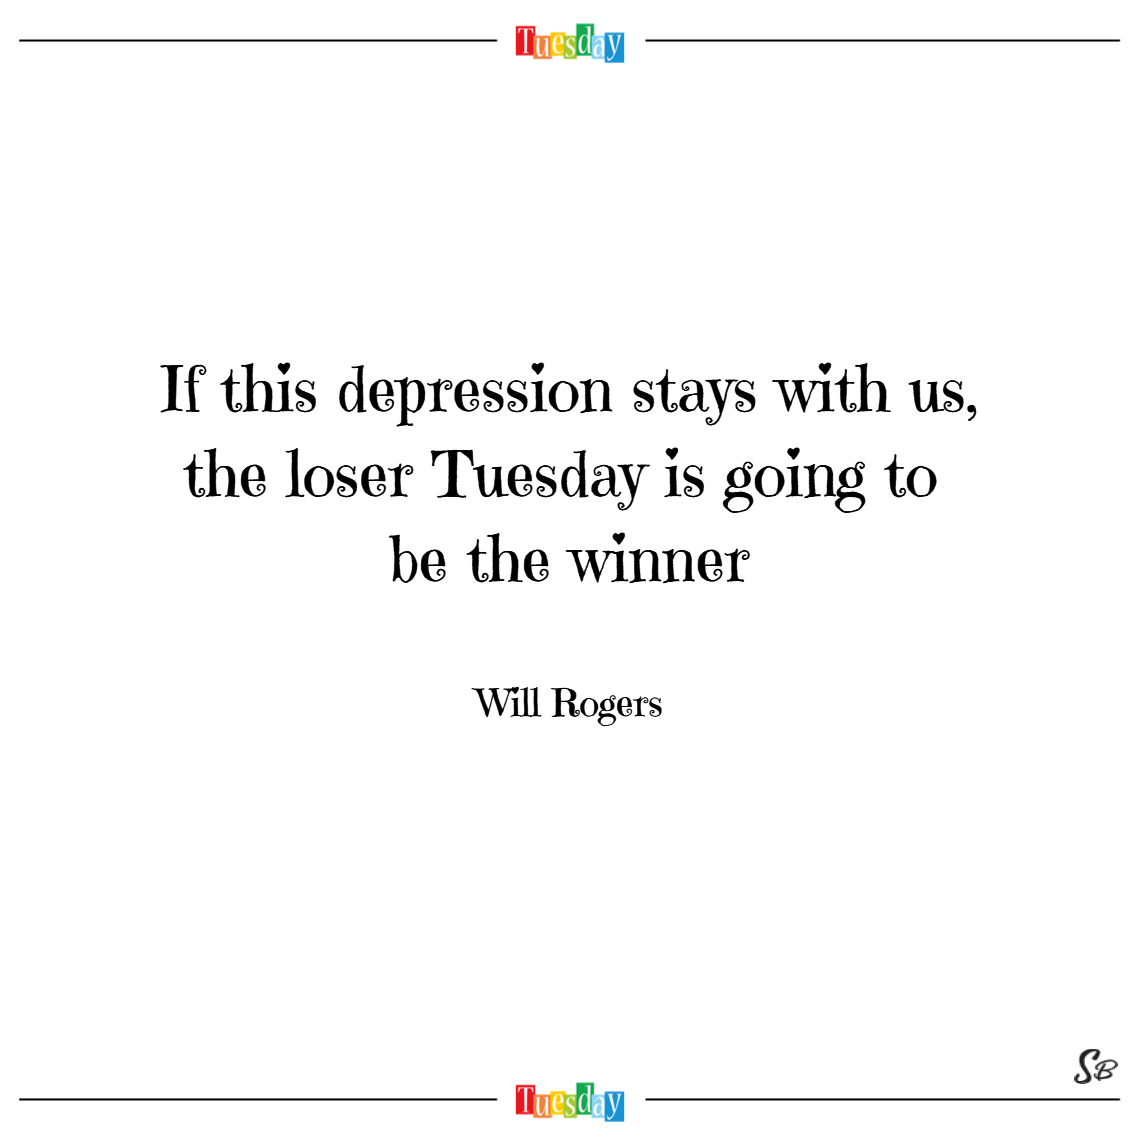 If this depression stays with us, the loser tuesday is going to be the winner. – will rogers